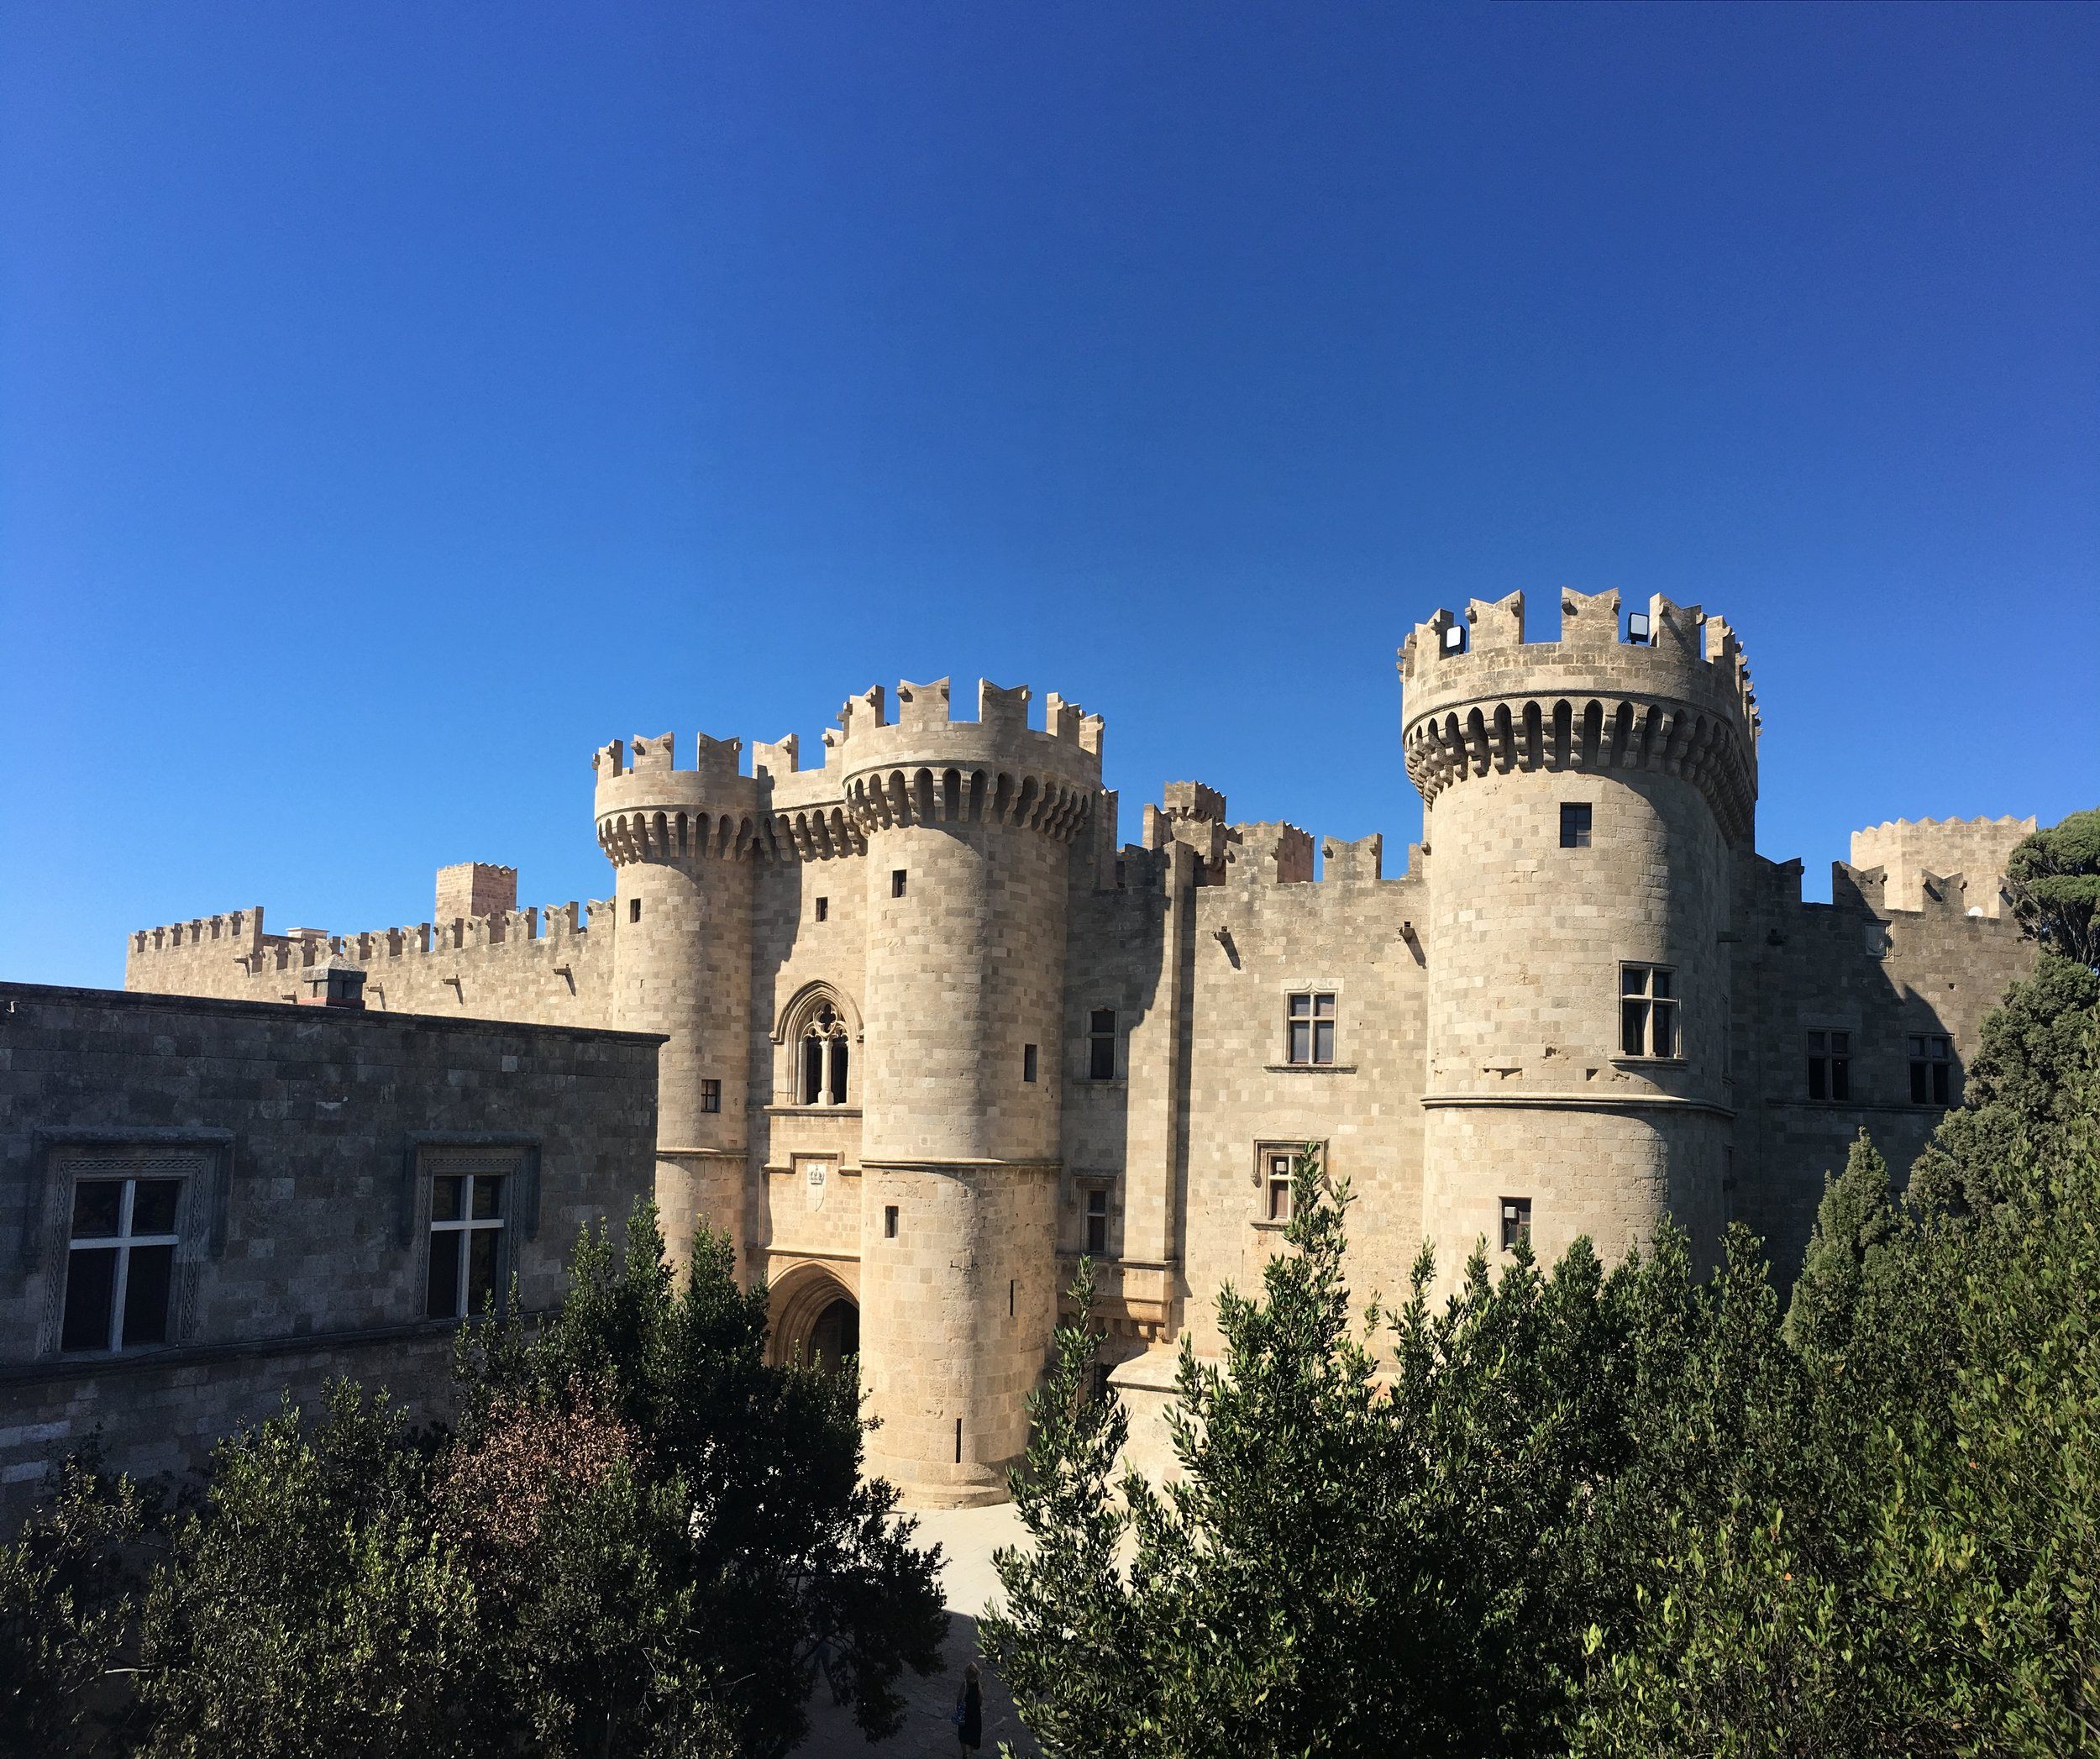 Palace of the Grand Master of Knights